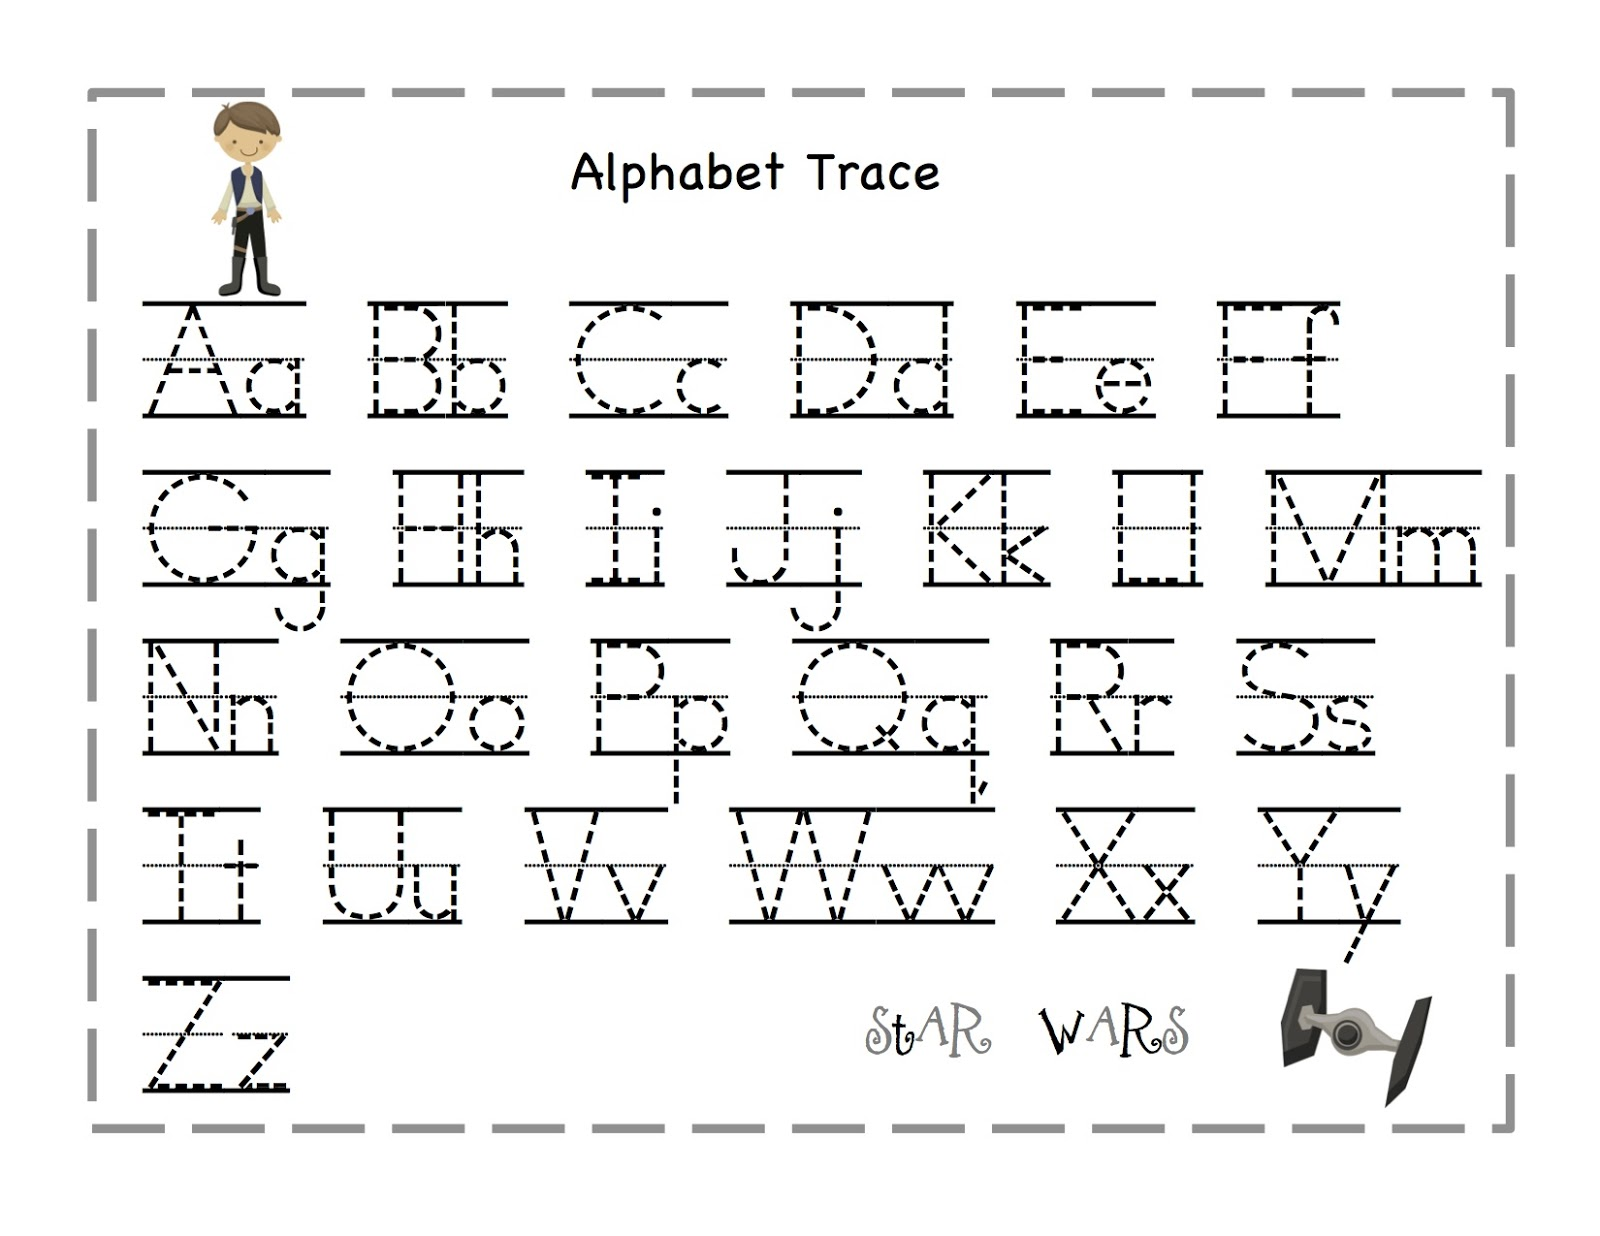 Printables Free Printable Alphabet Worksheets A-z worksheet free printable alphabet worksheets a z kerriwaller intrepidpath tracing letters coloring traceab